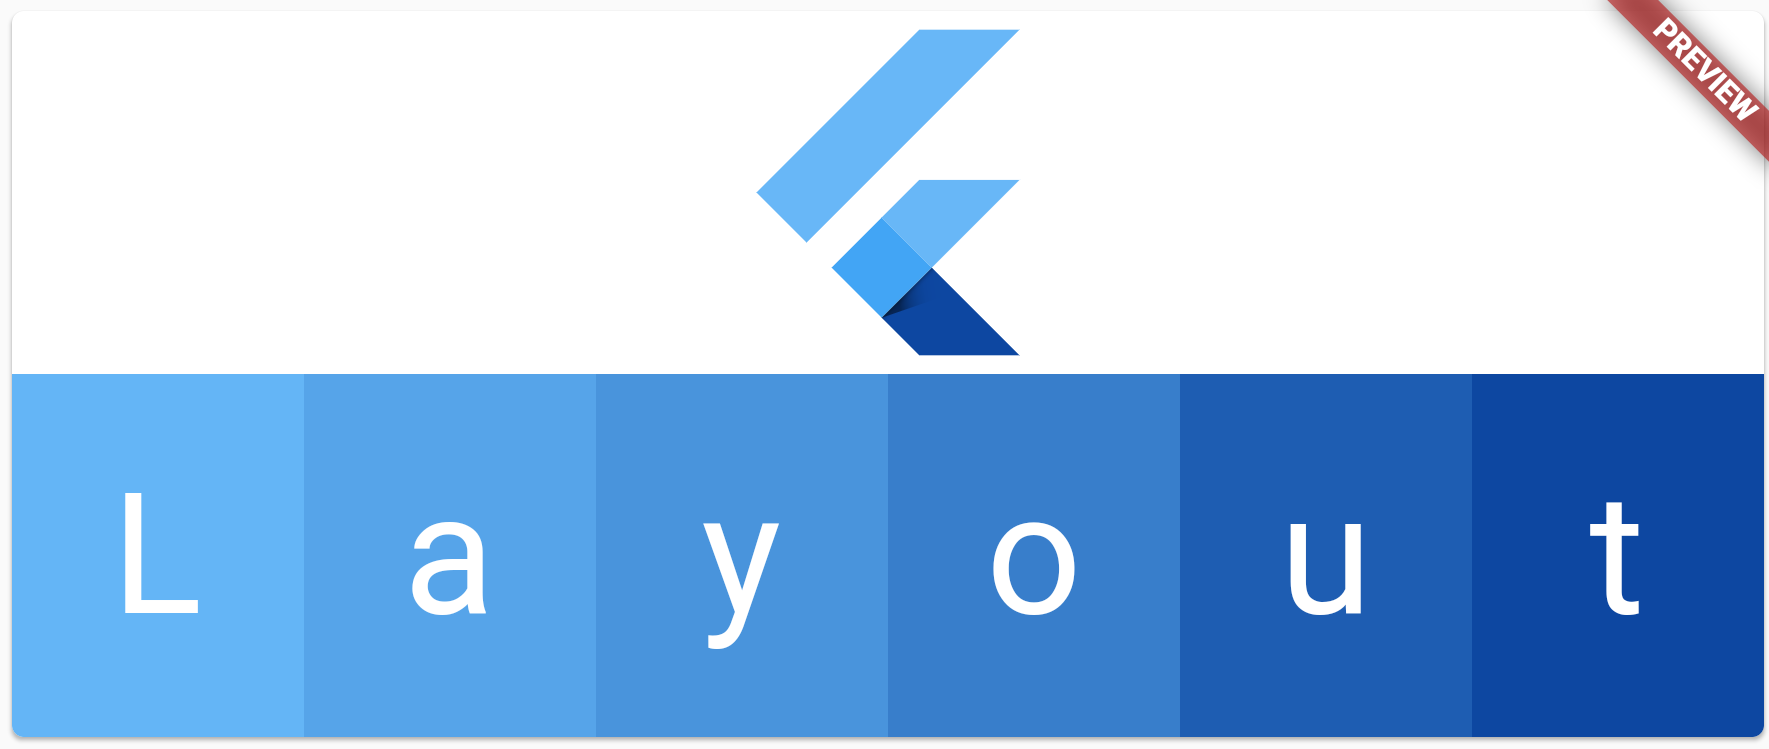 Flutter Layout Cheat Sheet - Flutter Community - Medium